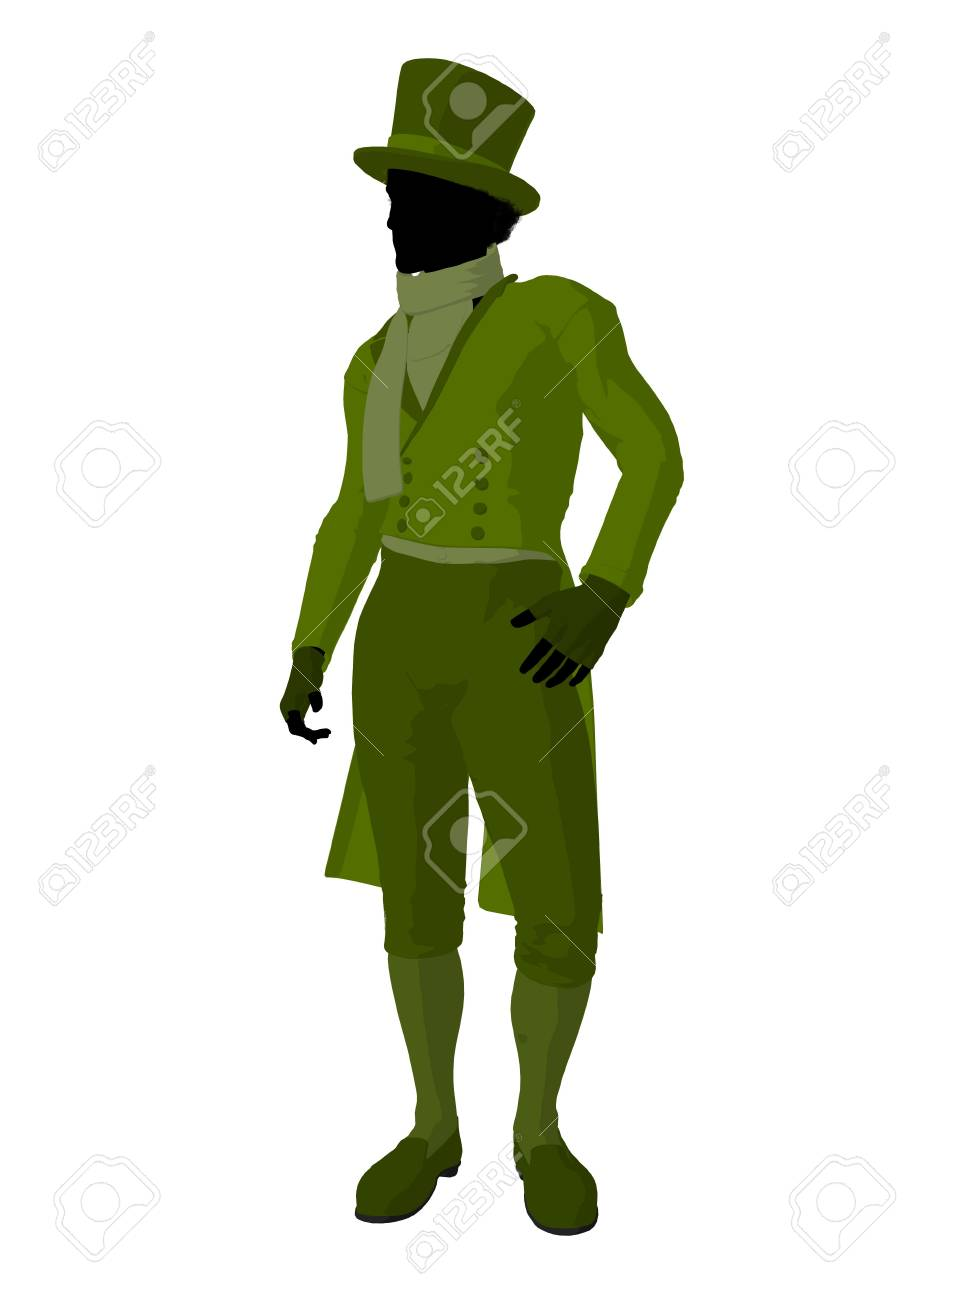 African american victorian man art illustration silhouette on a white background Stock Photo - 7655501